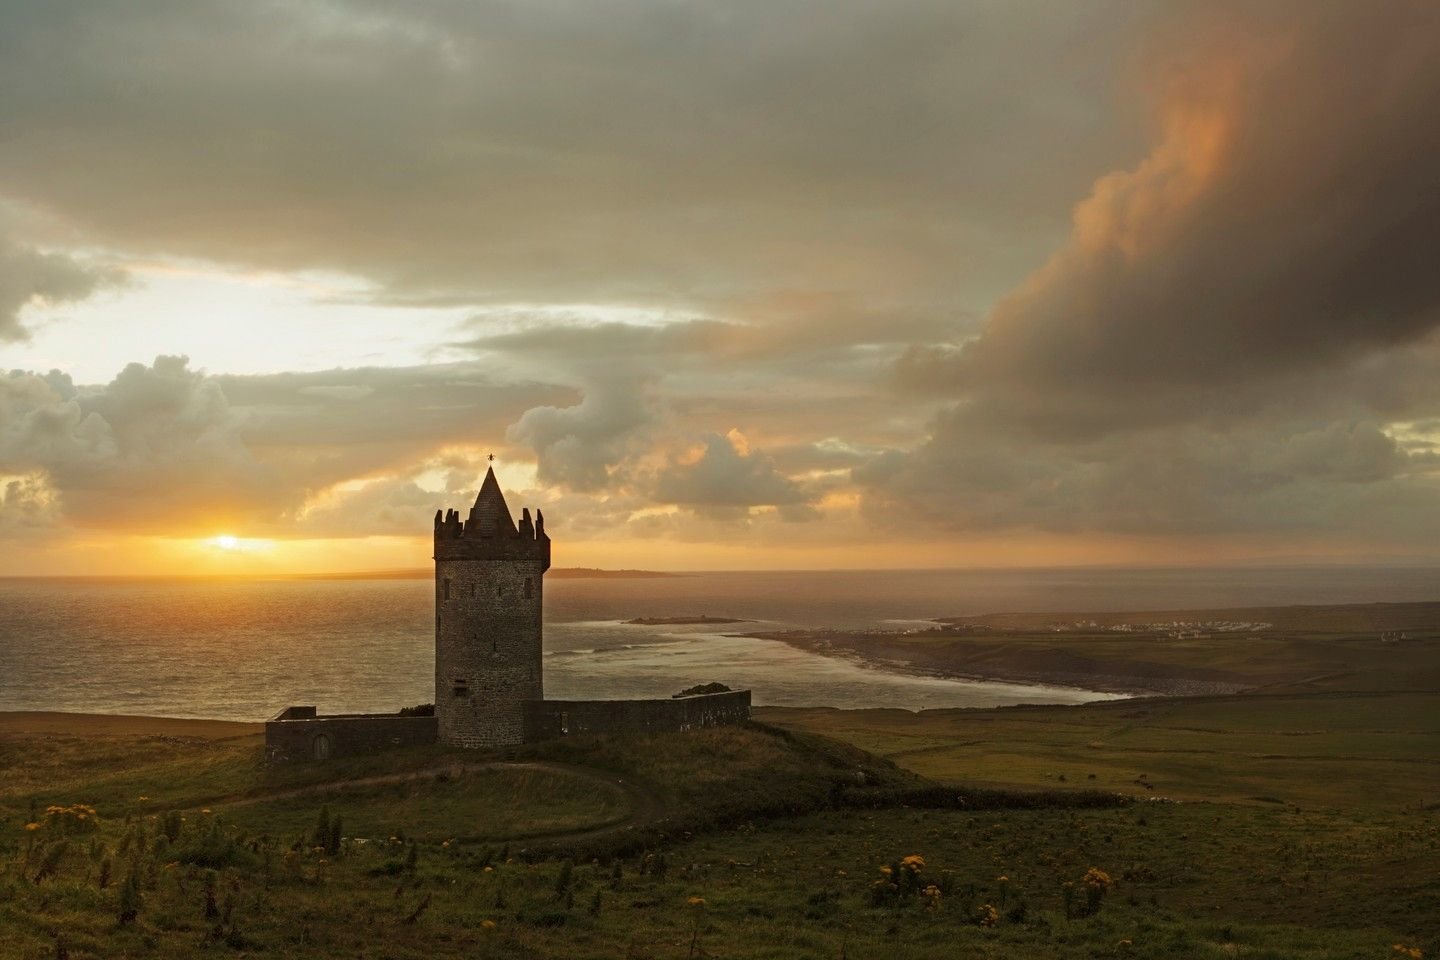 Doonagore Castle by Brendan Cullen: third placed image in the Heritage category